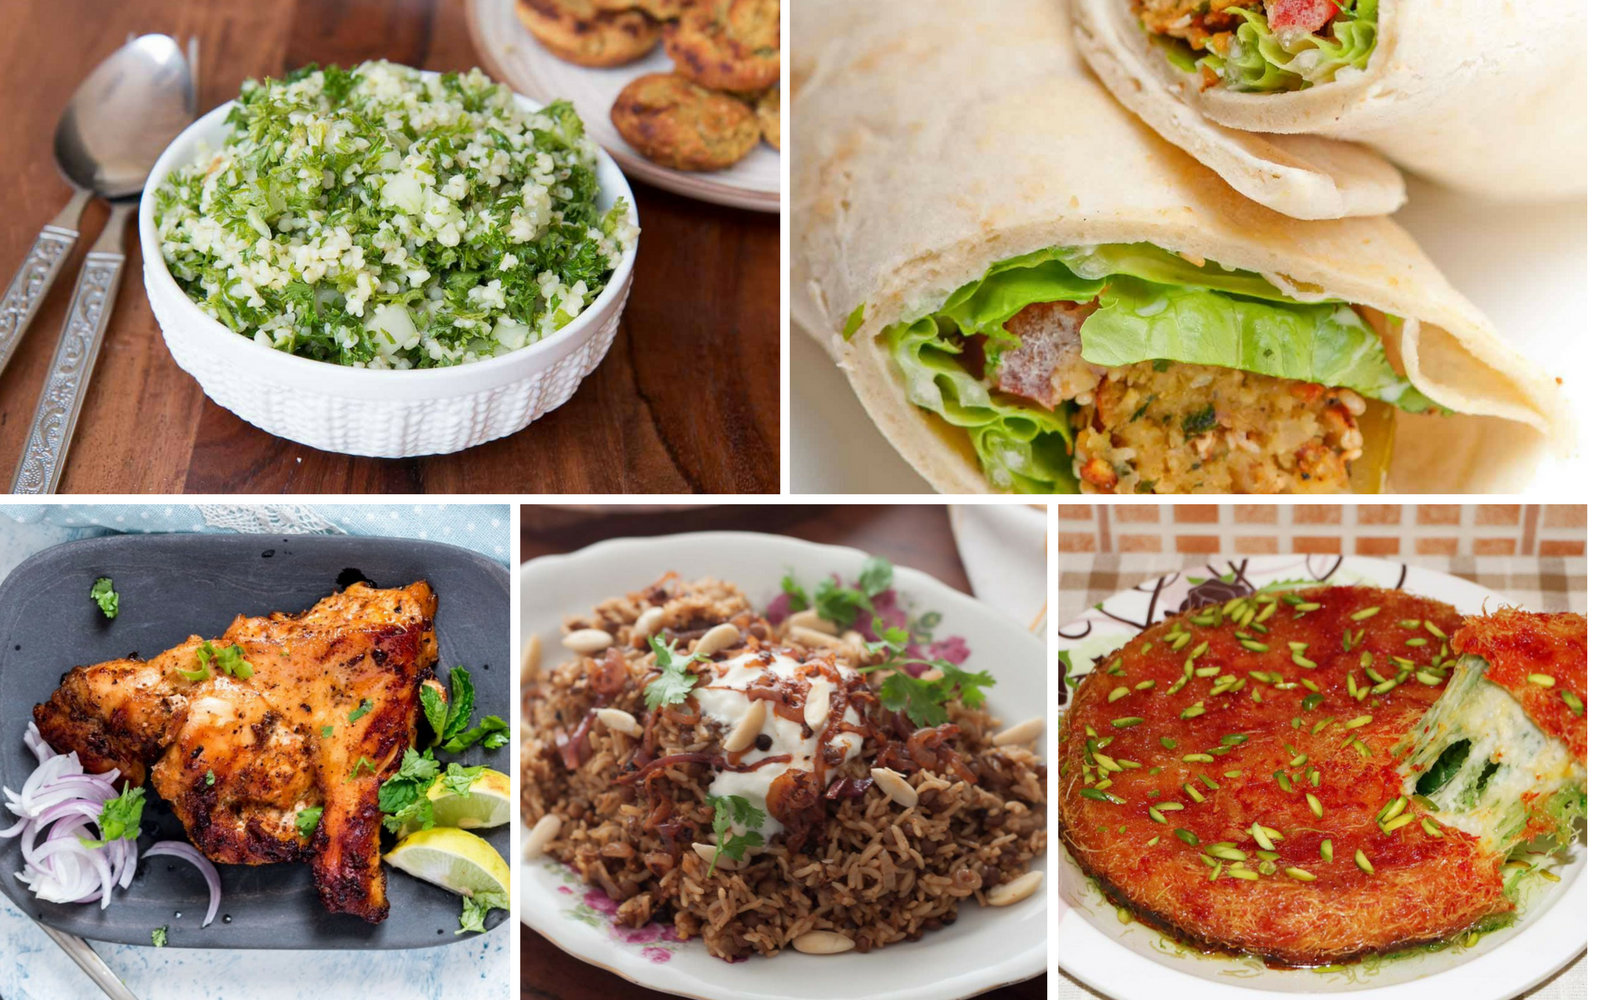 9 Delicious Middle Eastern Recipes For A Special Weekend Dinner